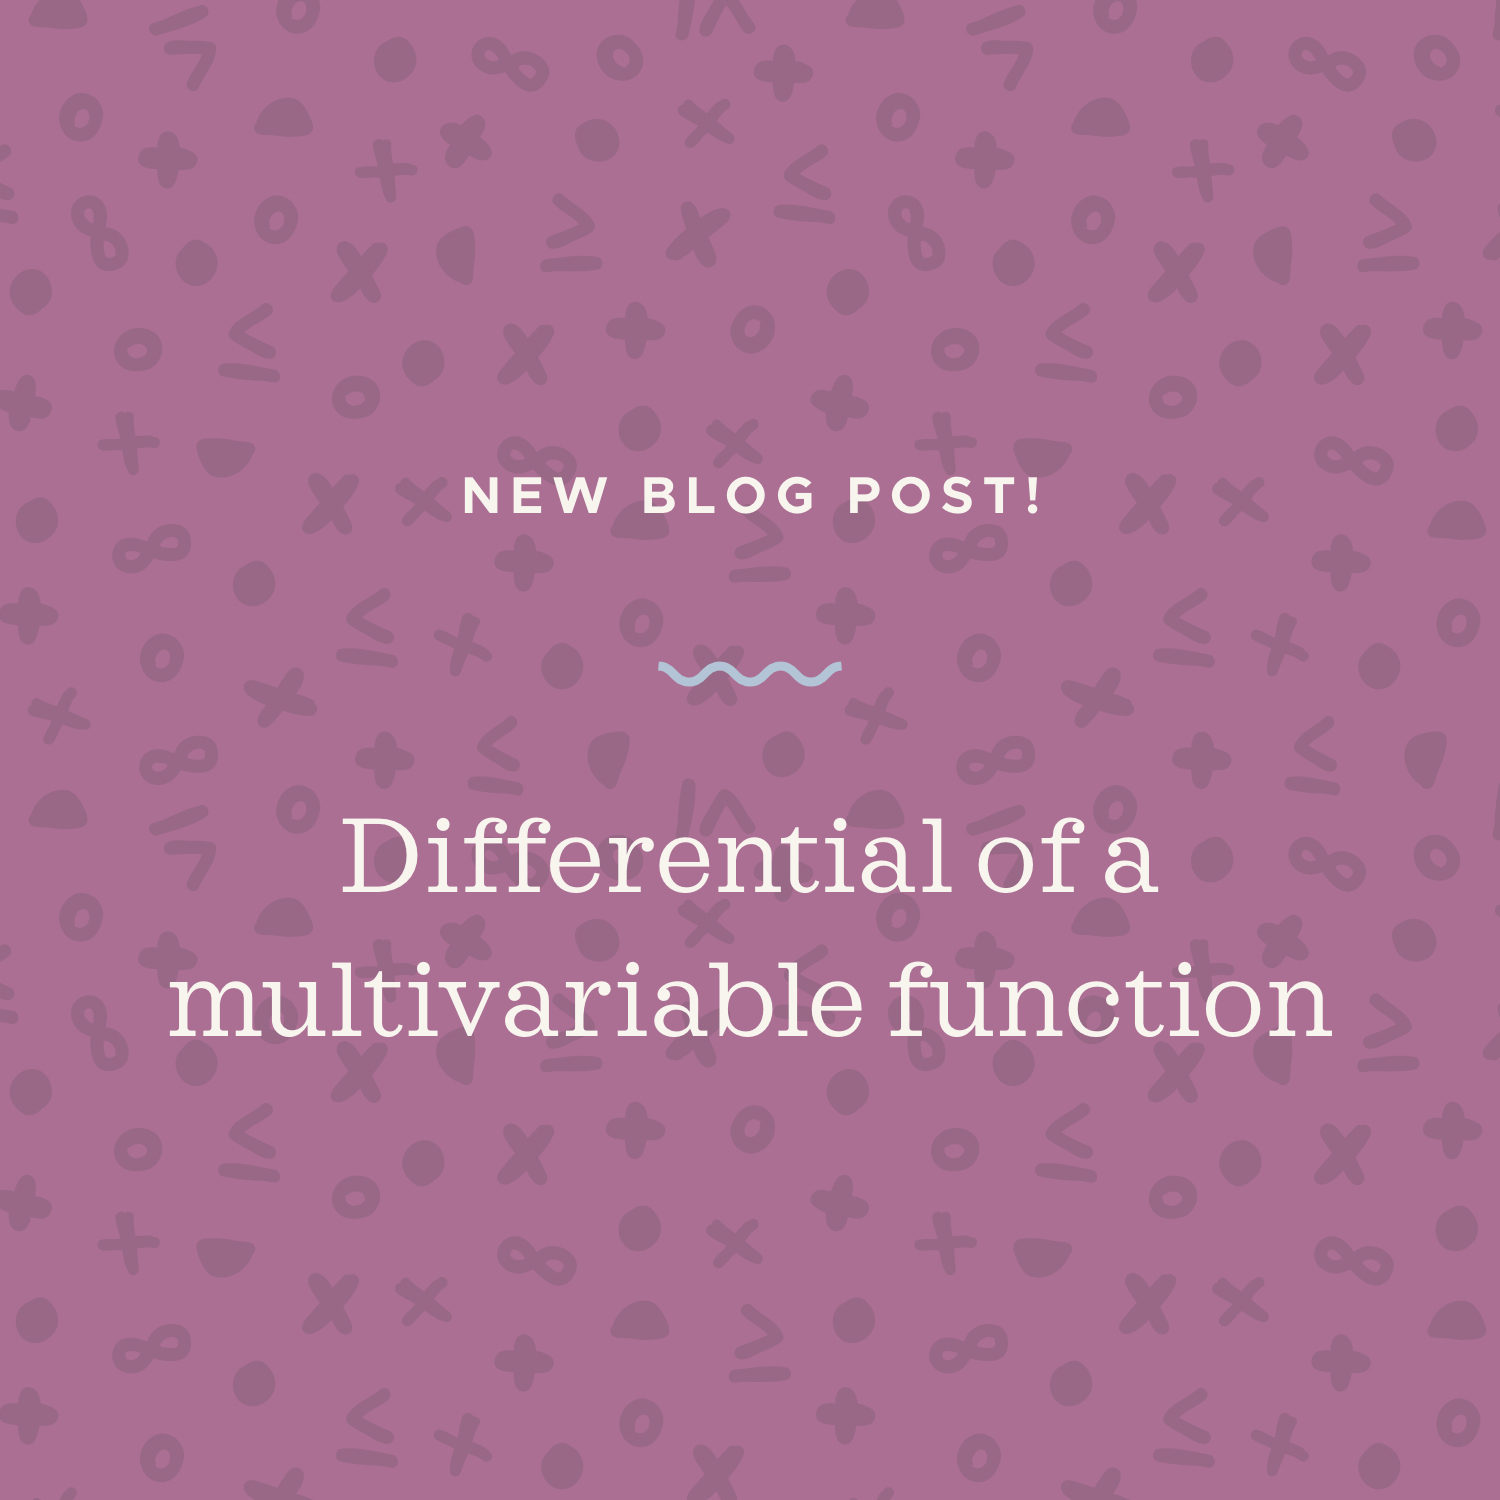 Differential of a multivariable function blog post.jpeg